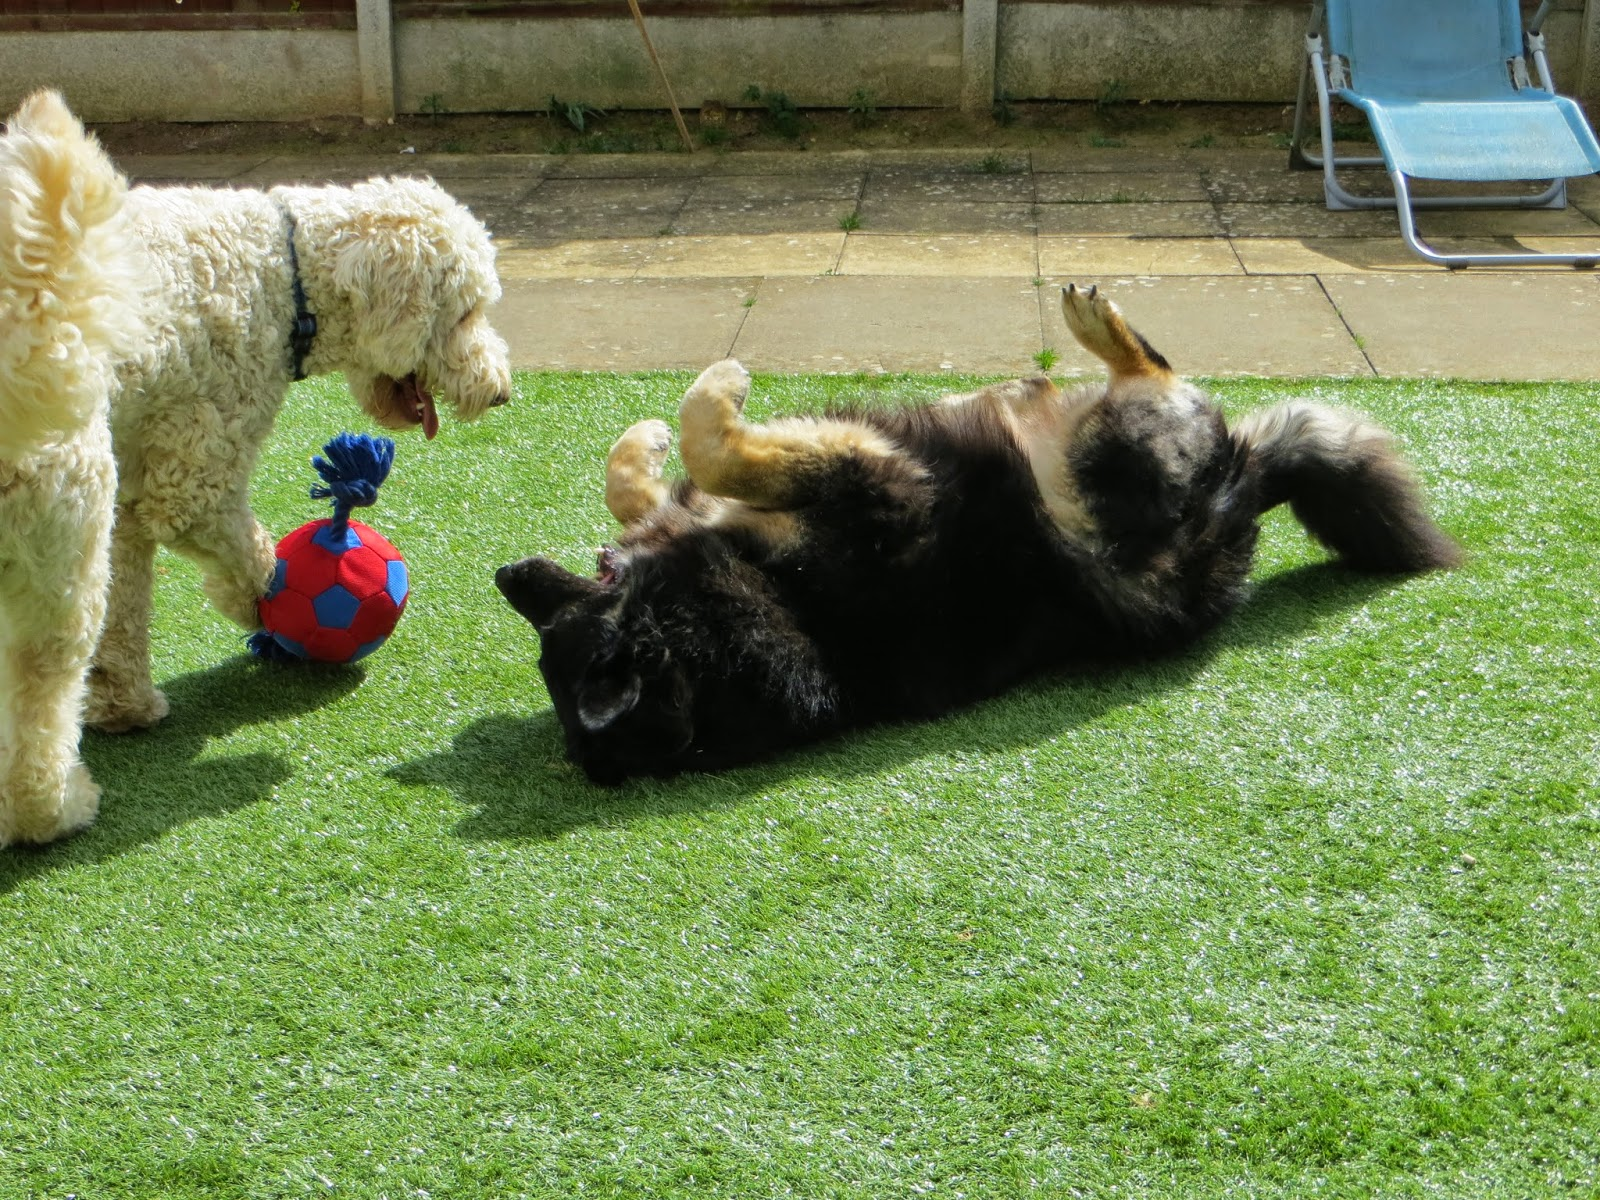 Suny and Trojan playing in the garden